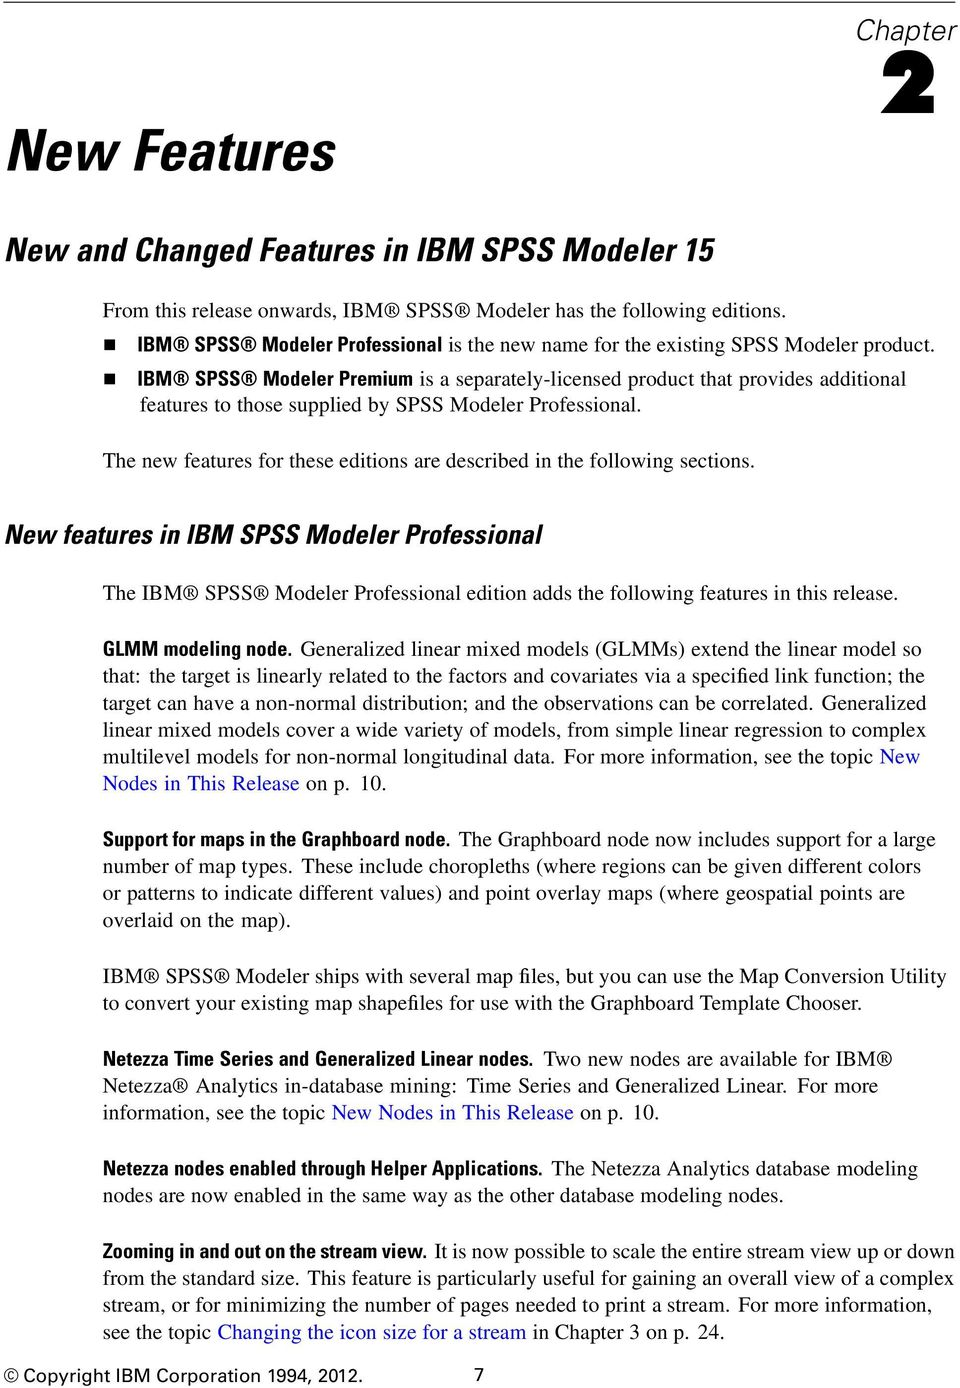 IBM SPSS Modeler Premium is a separately-licensed product that provides additional features to those supplied by SPSS Modeler Professional.